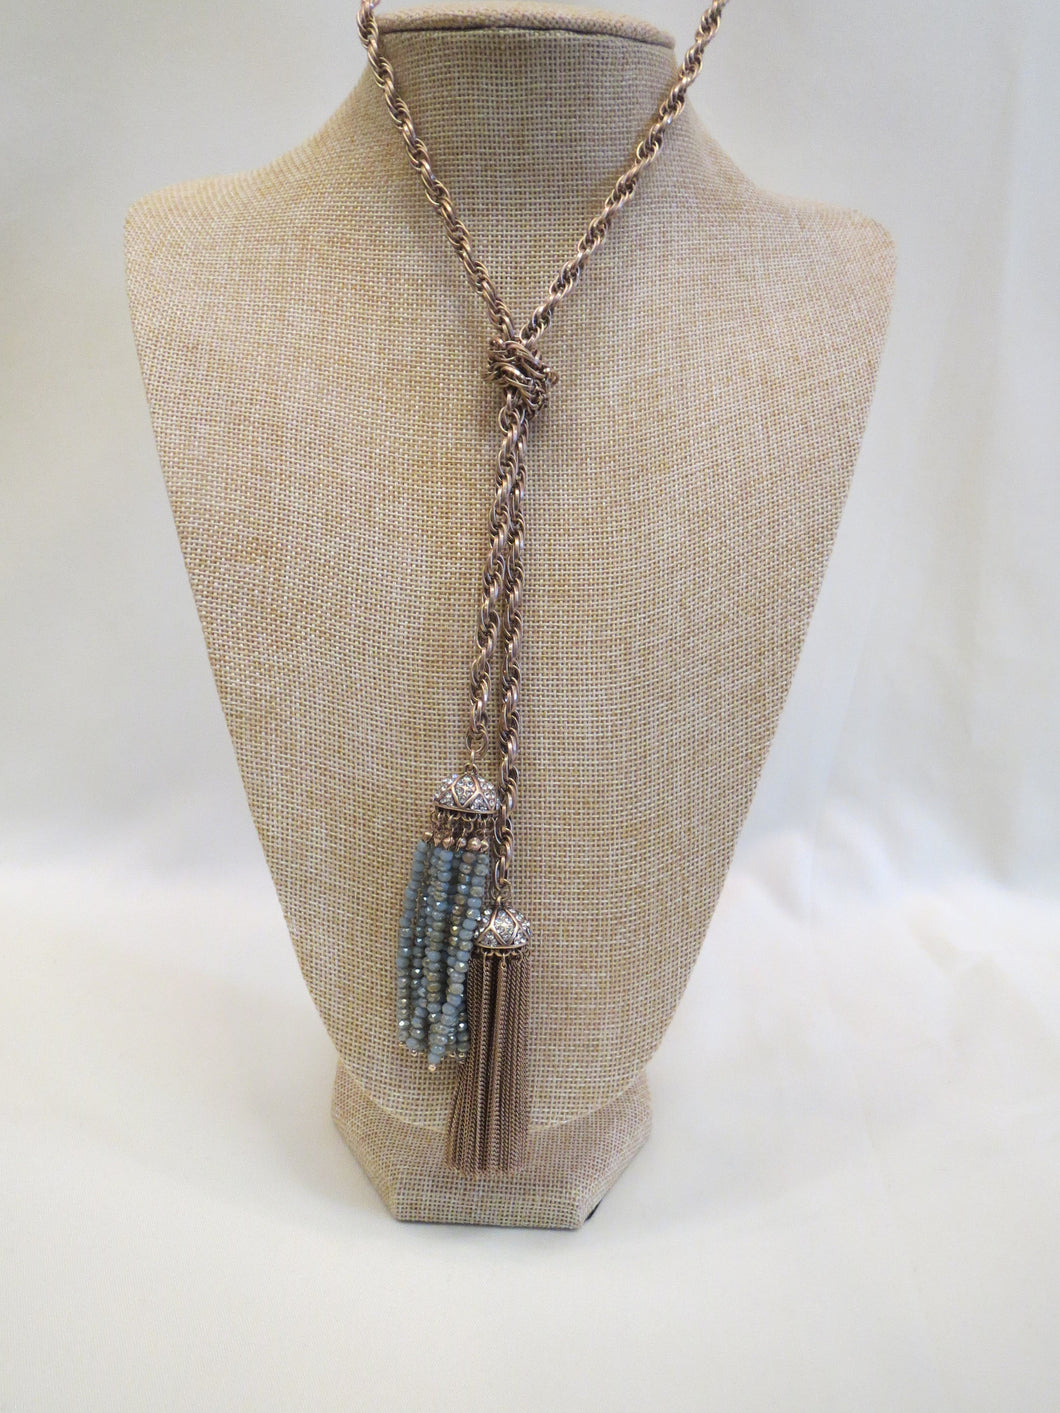 ADO | Gold Tassel Necklace - All Decd Out